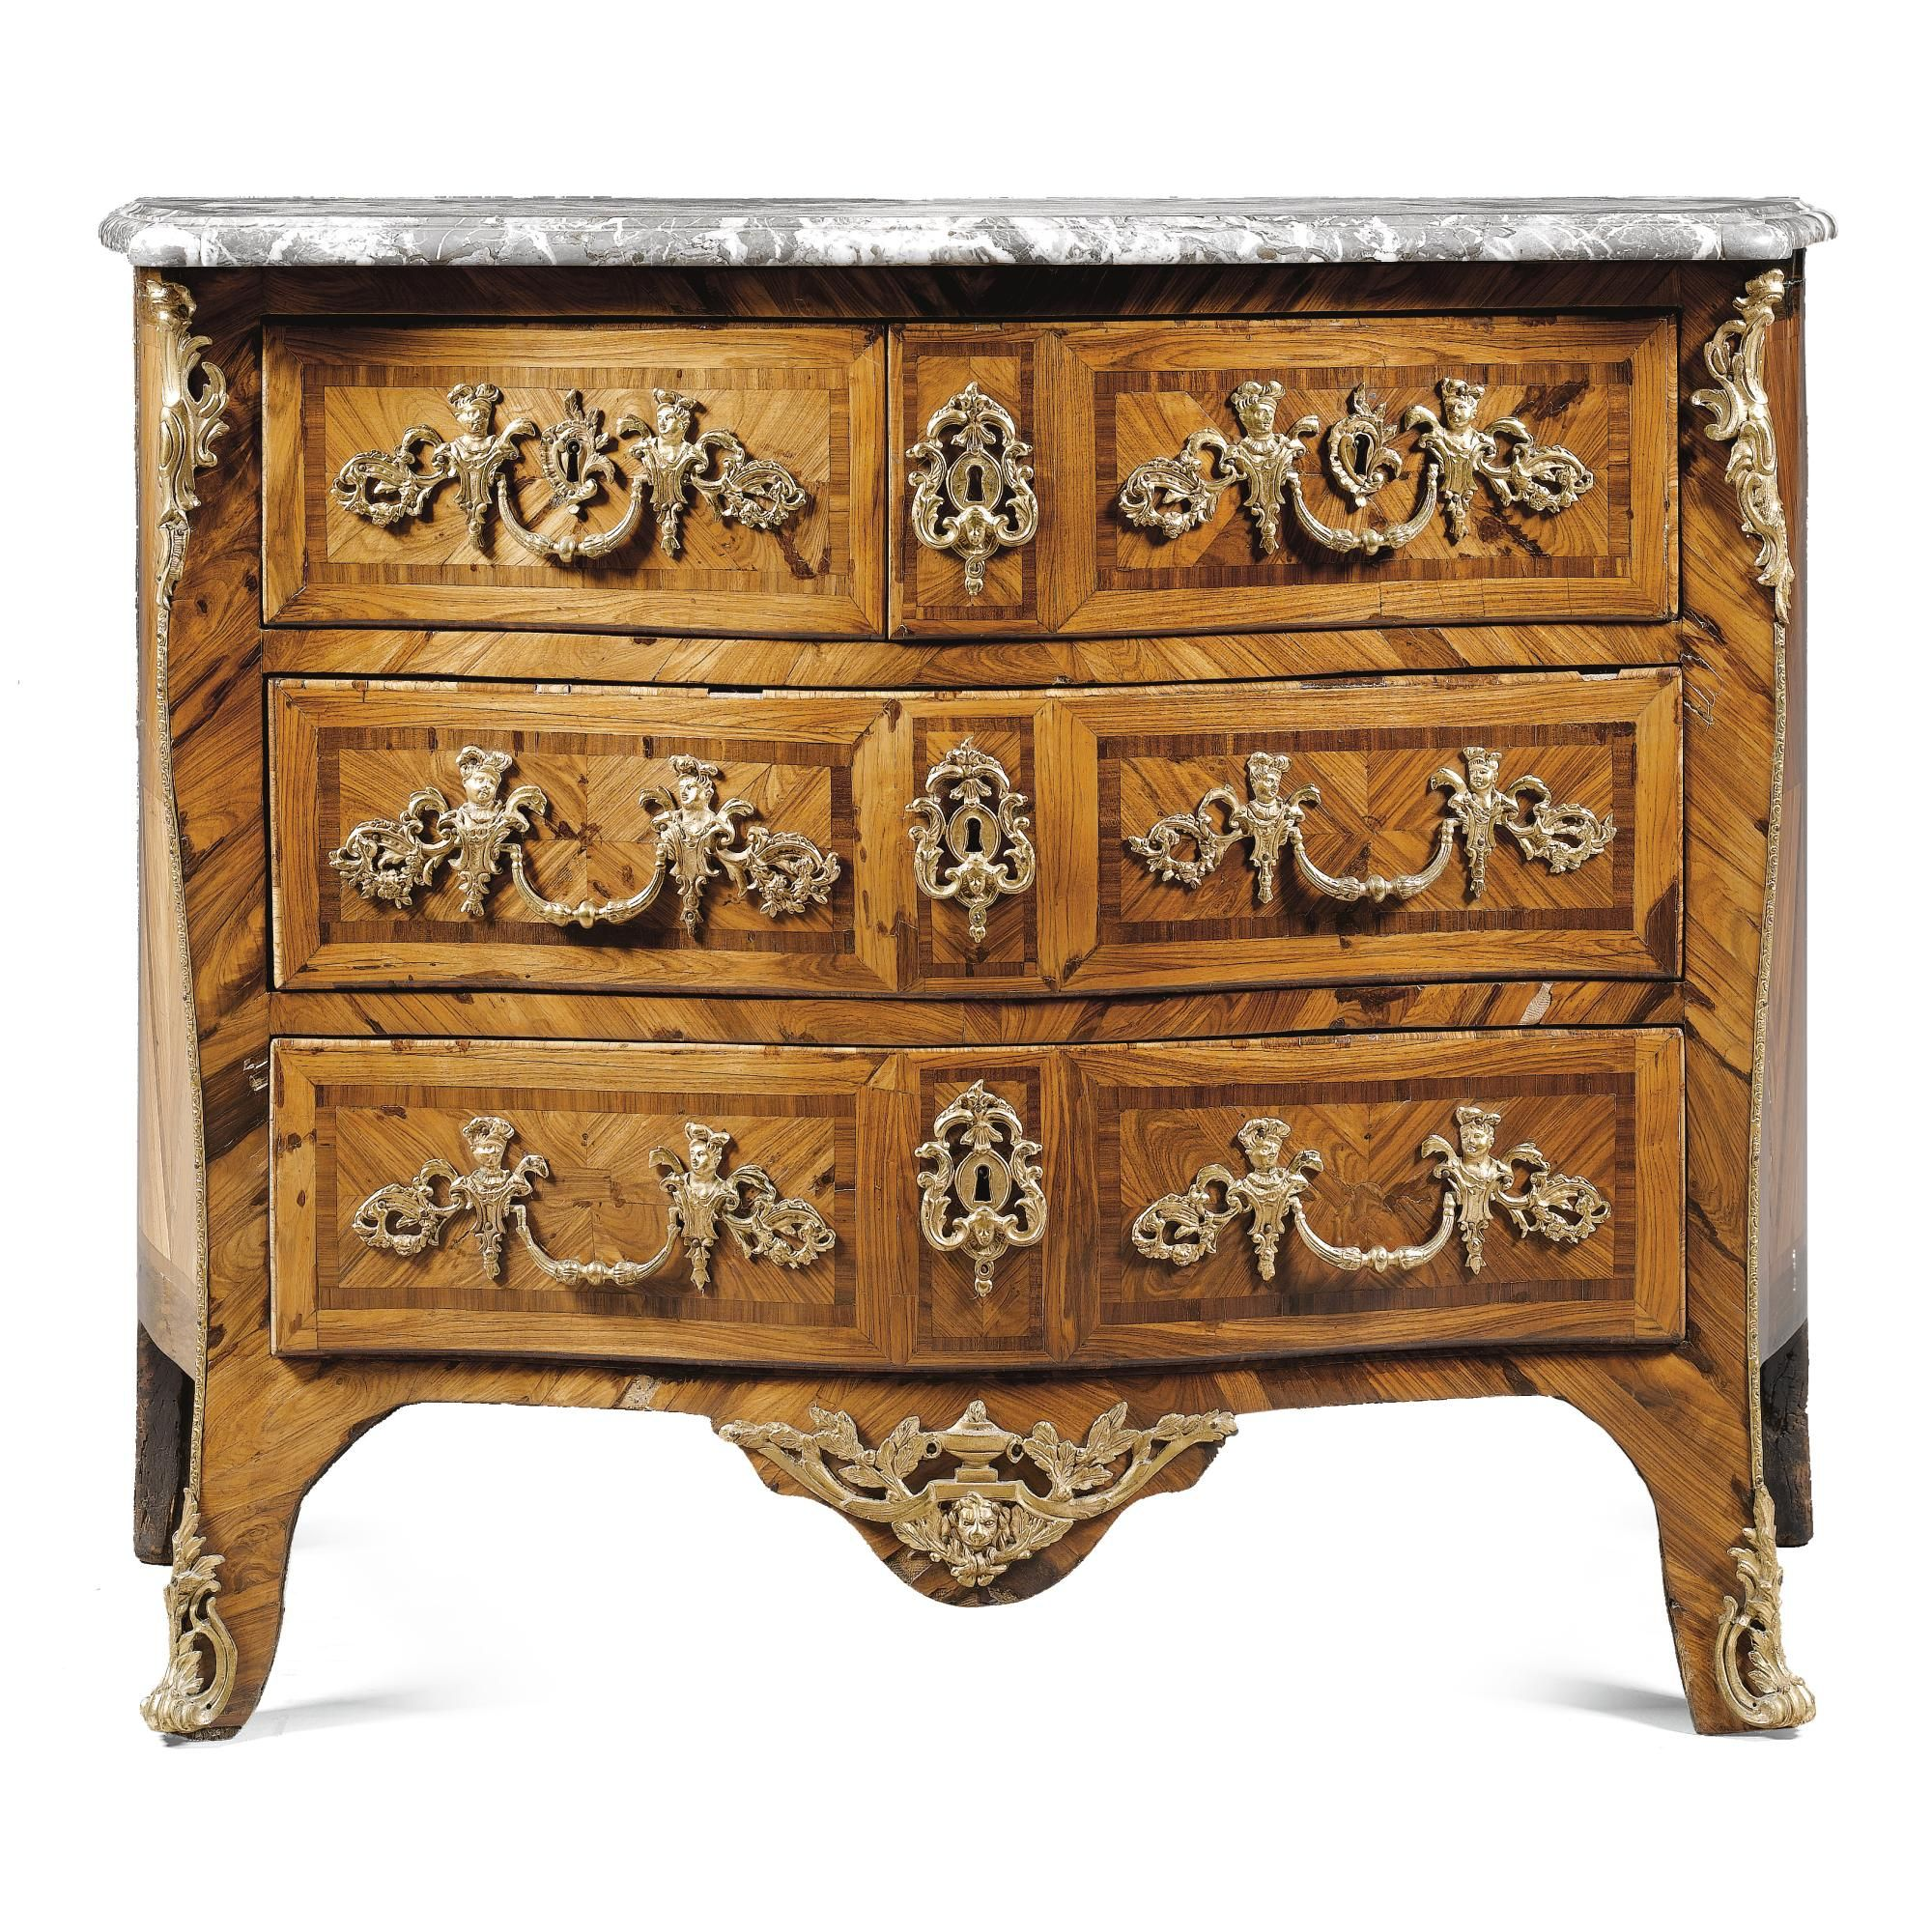 Muebles Italianos Clasicos A Kingwood Tulipwood And Parquetry Commode Stamped B